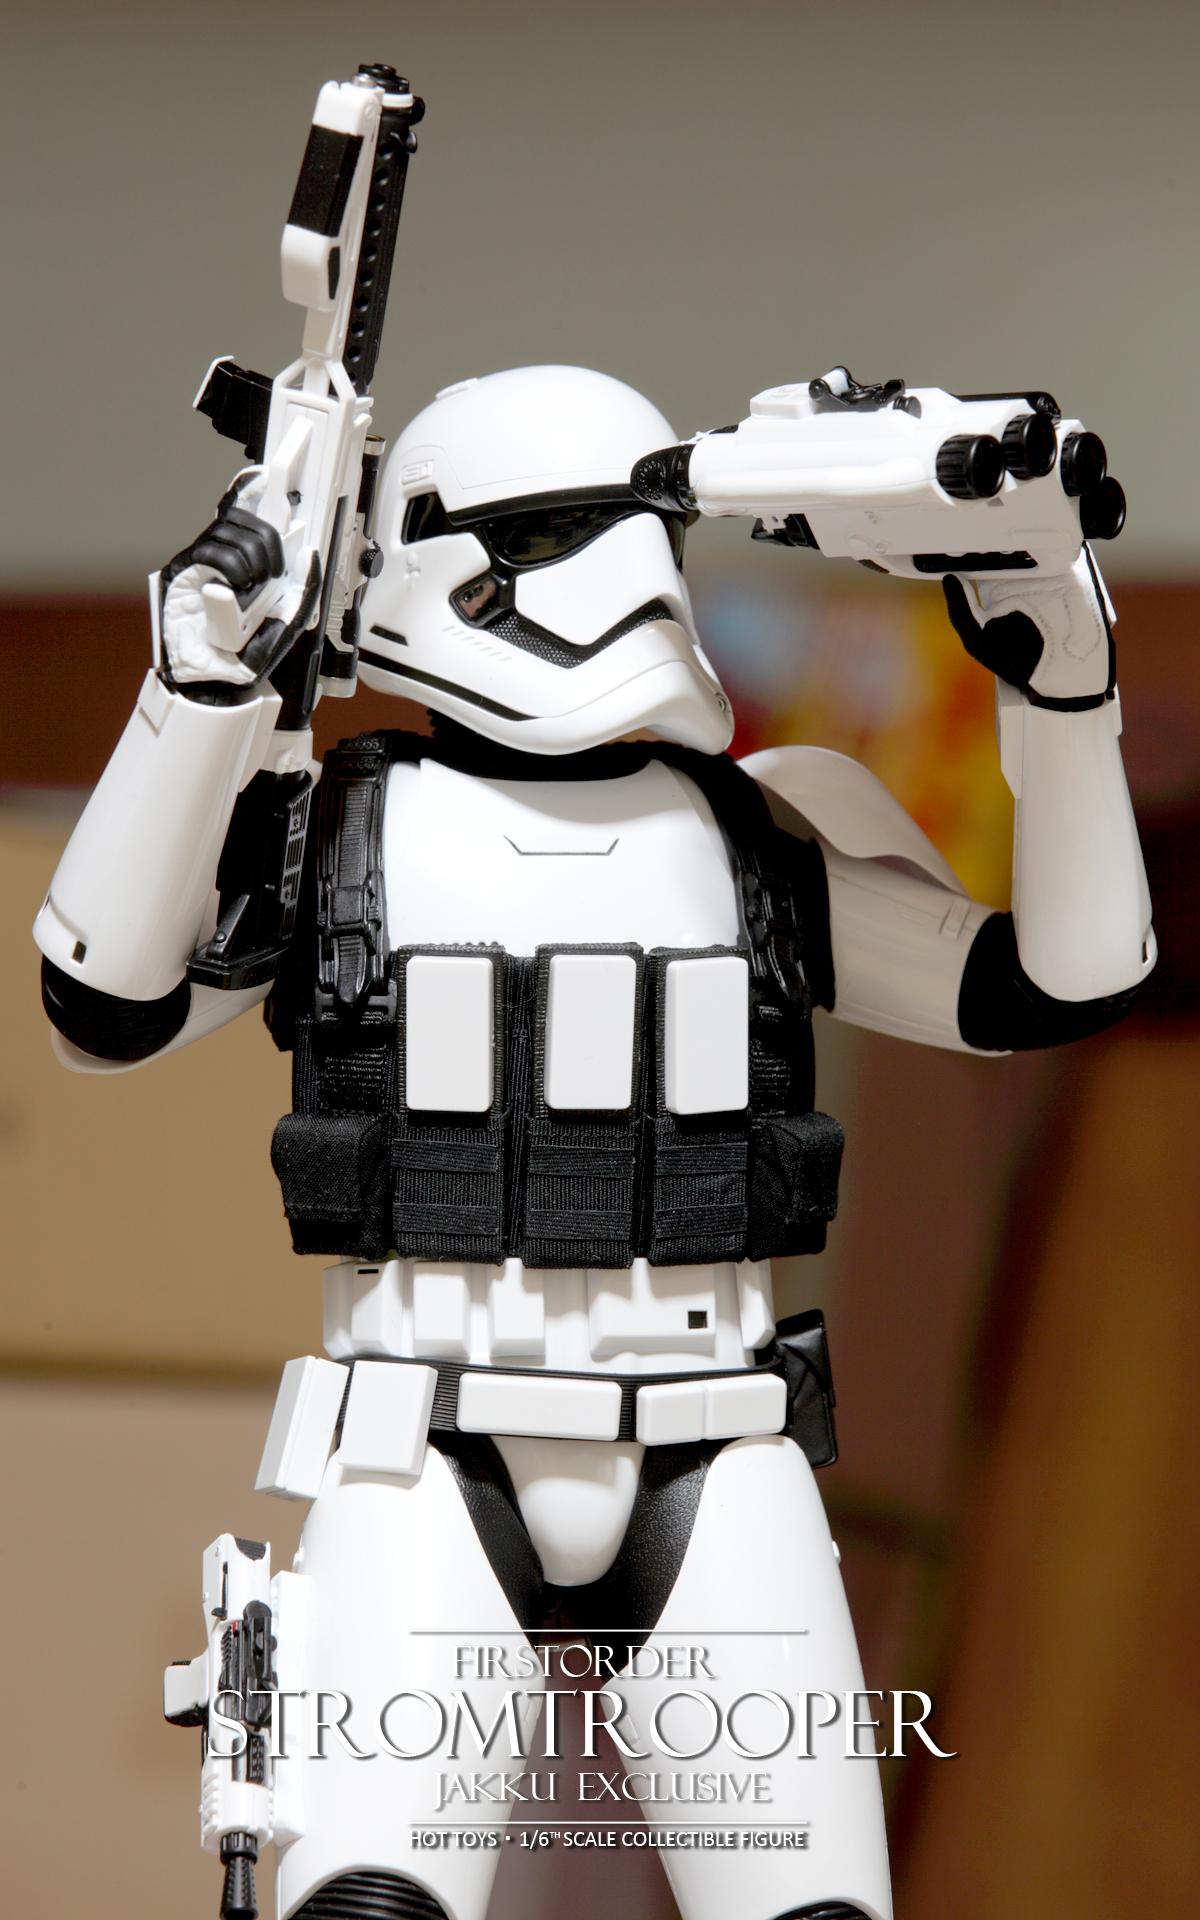 hottoys-star-wars-the-force-awakens-first-order-stormtrooper-jakku-picture11